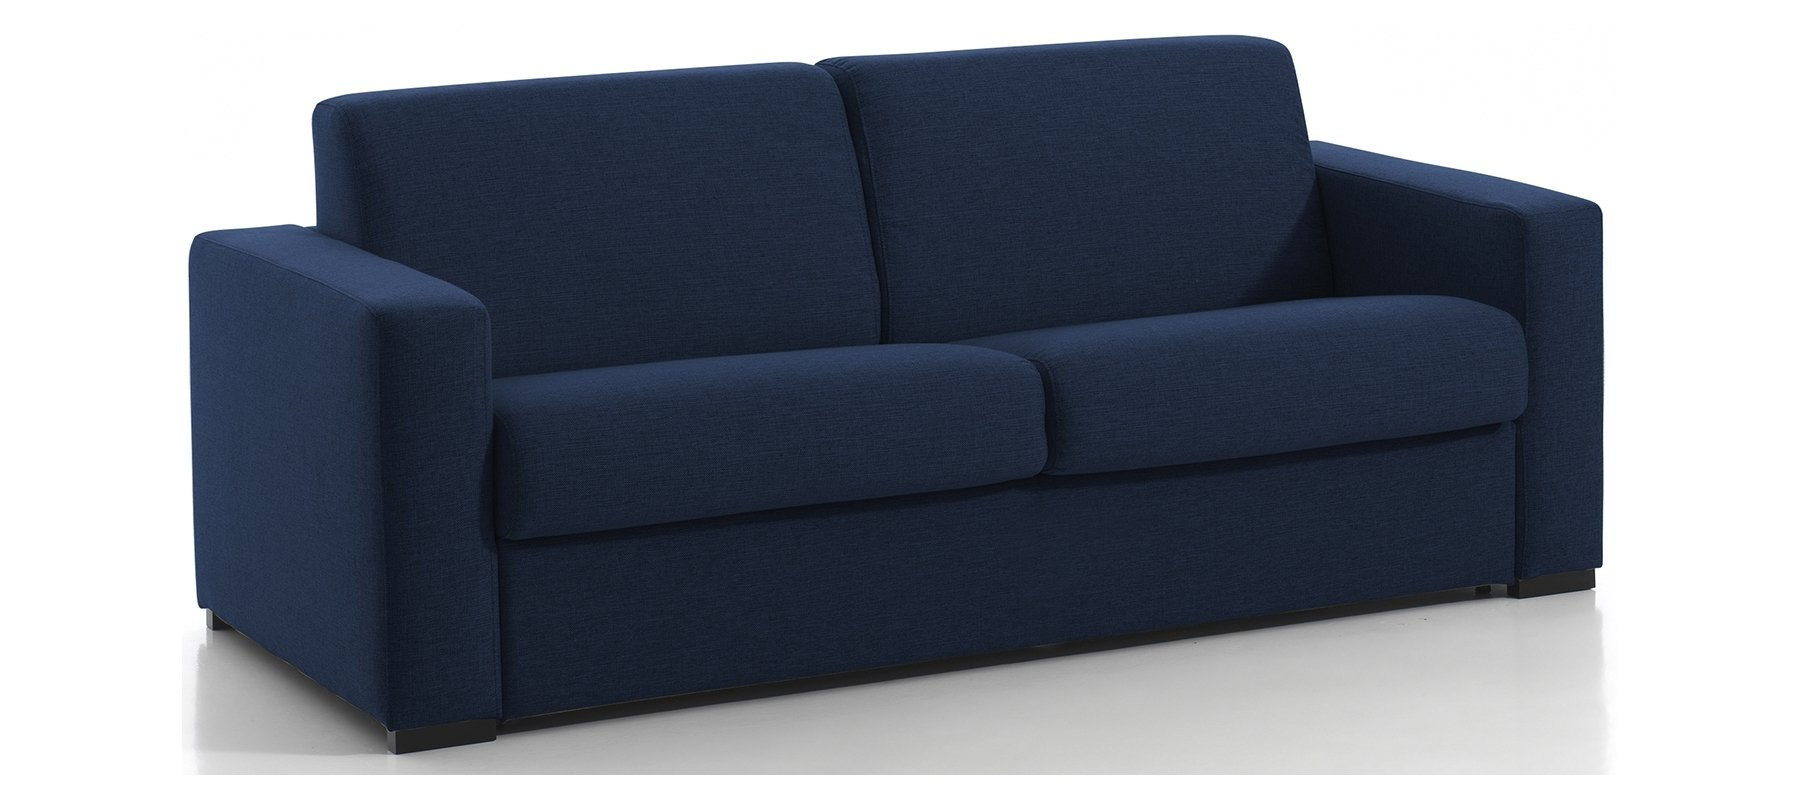 Canapé convertible 3 places MODENA - Largeur 196 cm - Couchage 140 cm